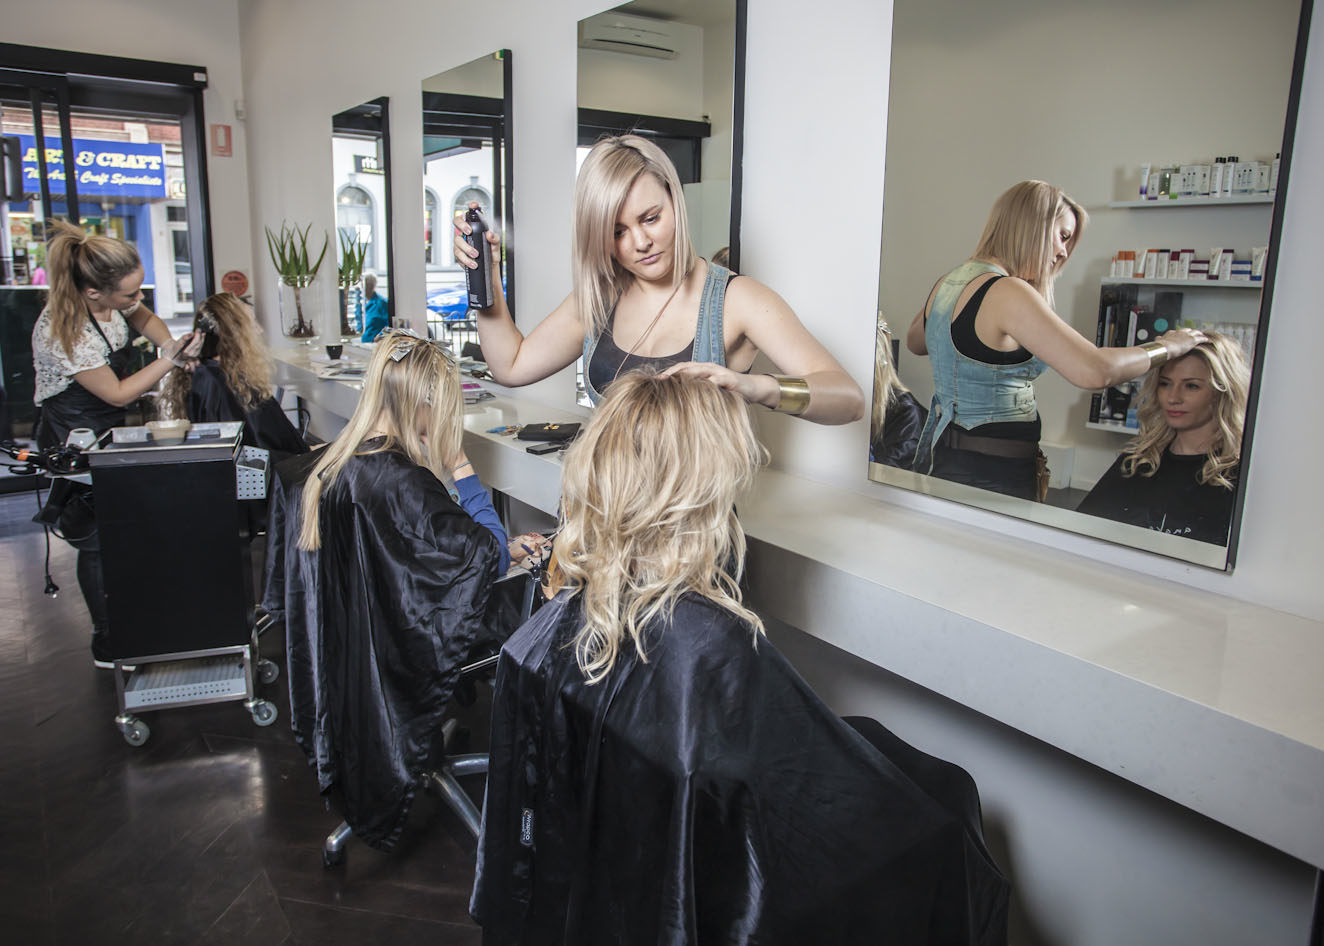 Choosing Hairdresser Your Local Area